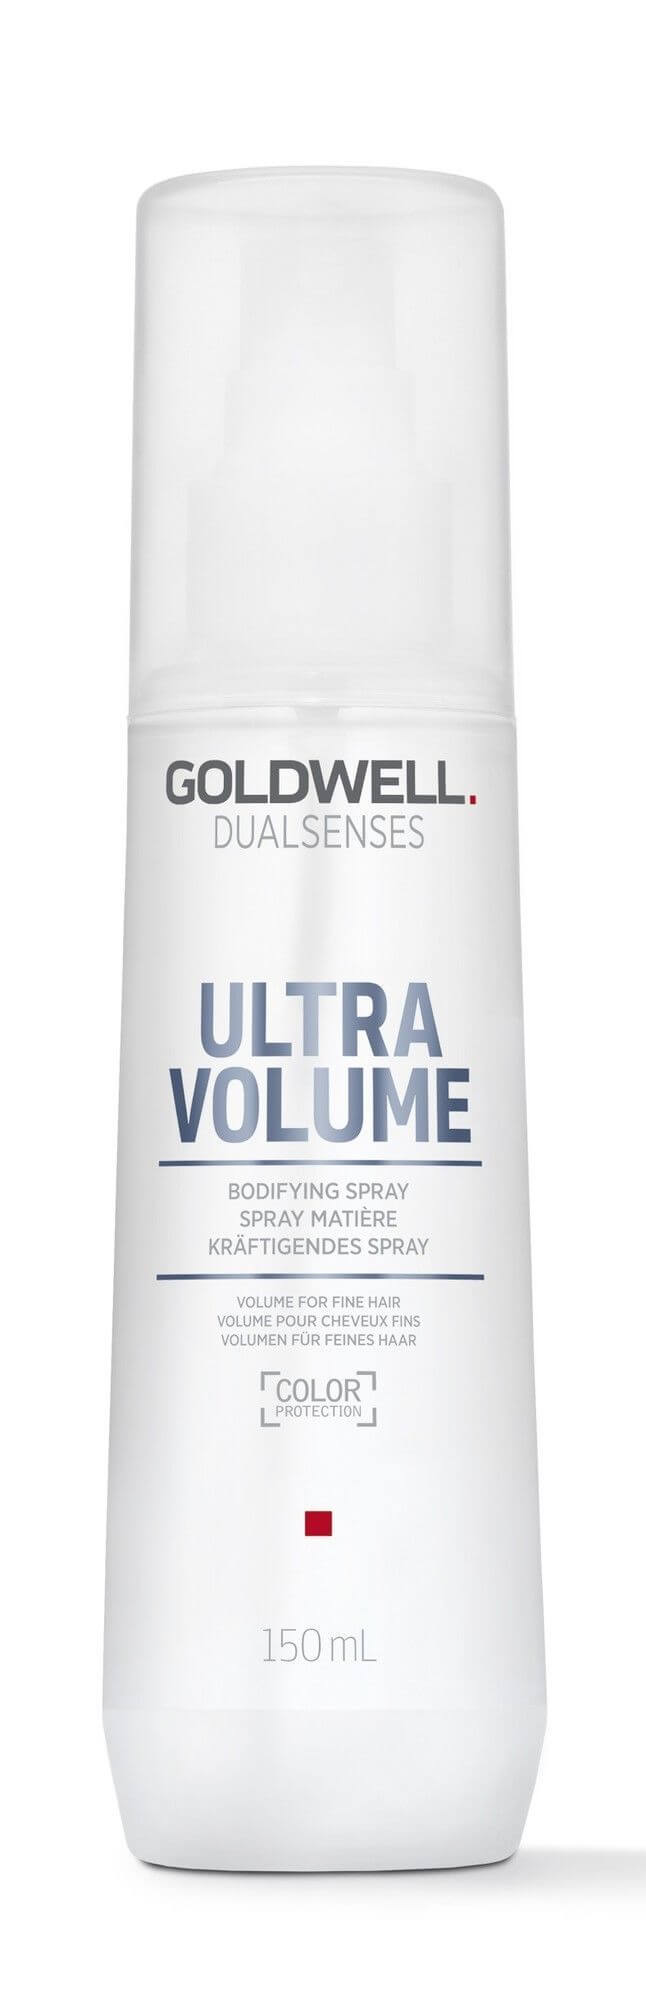 Dualsenses Ultra Volume Bodifying Spray.